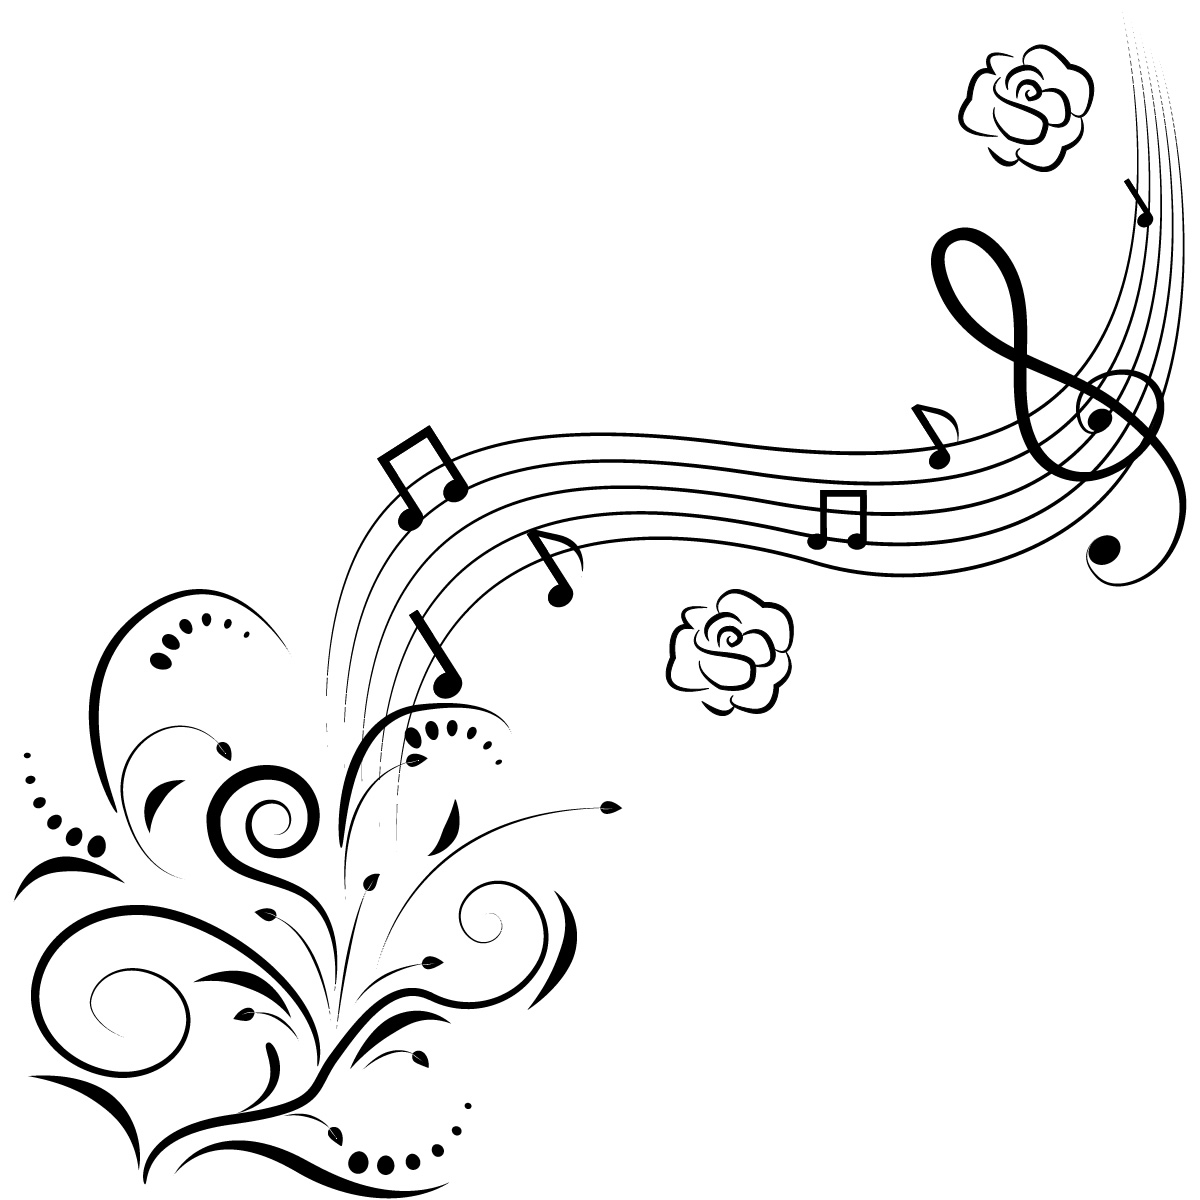 coloring notes free printable music note coloring pages for kids coloring notes 1 1